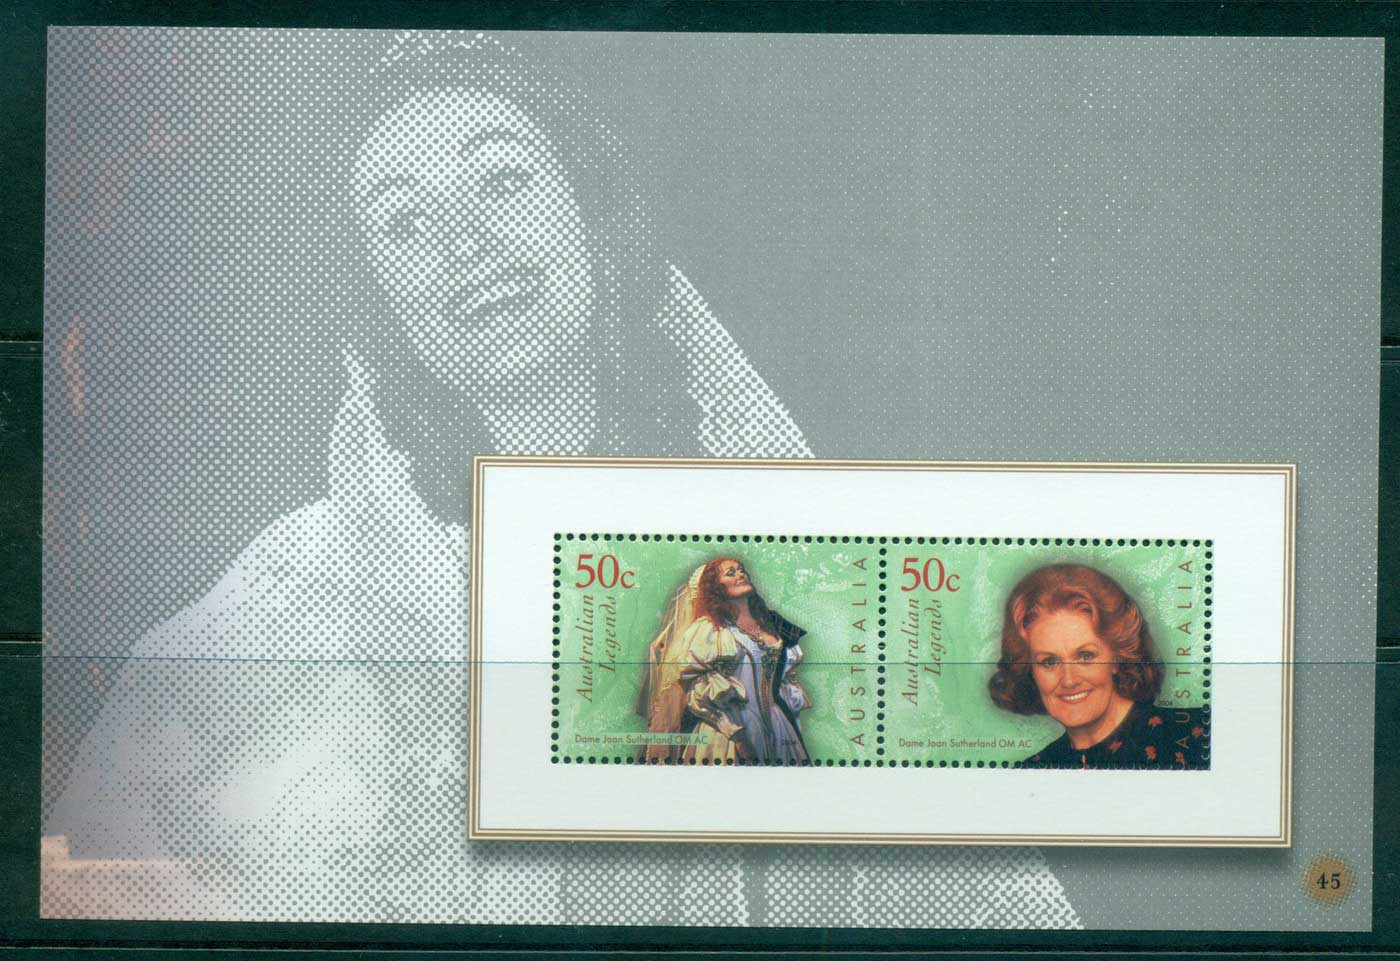 Australia 2010 #45 Australian Legends Joan Sutherland Booklet pane MUH lot34640